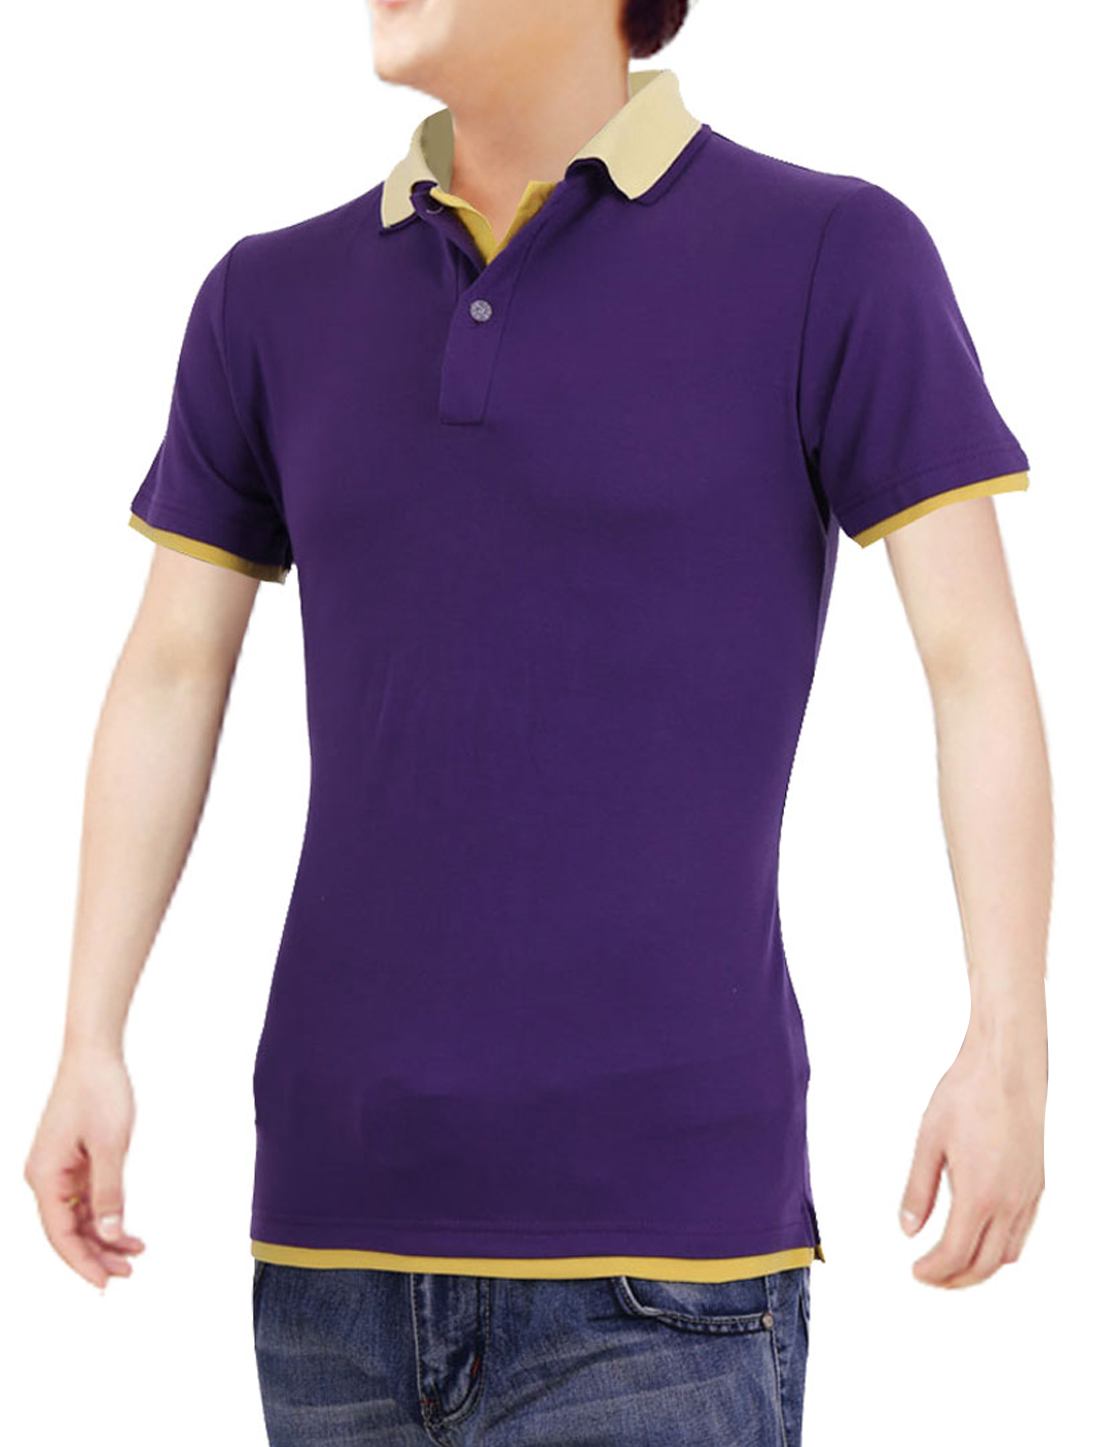 Men Short Sleeves Dark Purple Yellow Double Collar Polo Shirt S